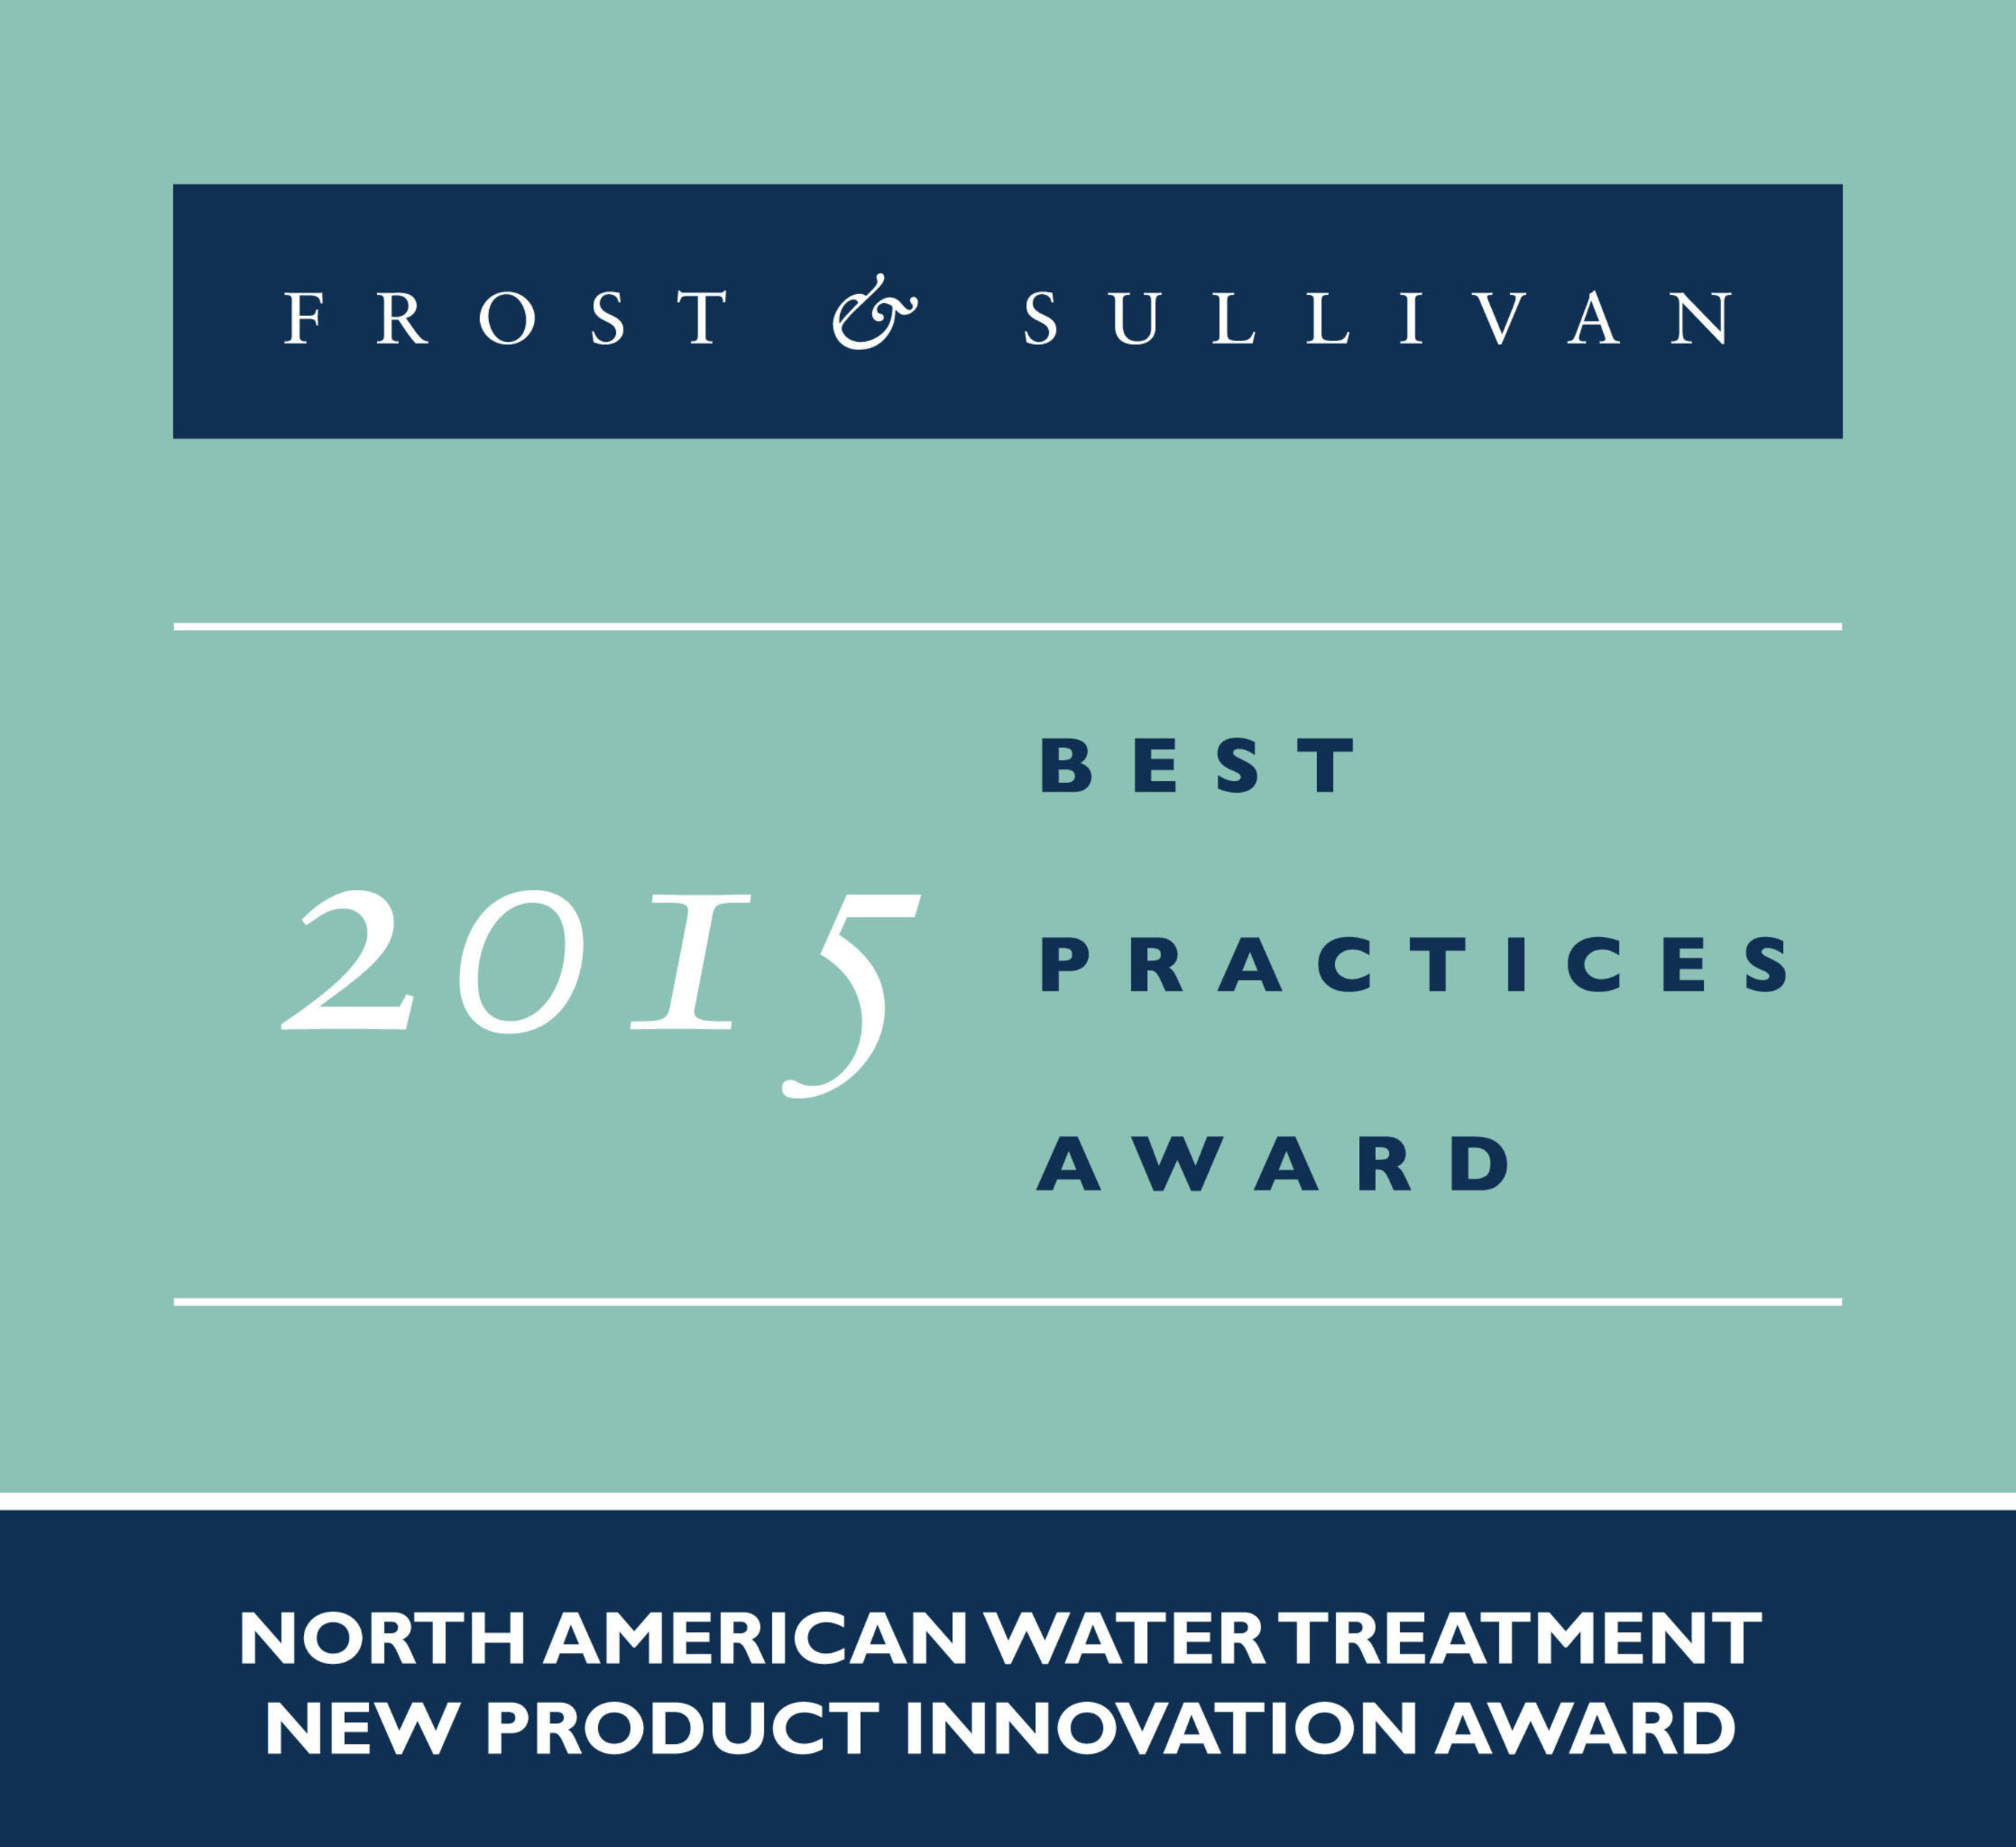 Frost & Sullivan Applauds BioLargo's Innovative, Iodine-based Water Treatment Technology in the